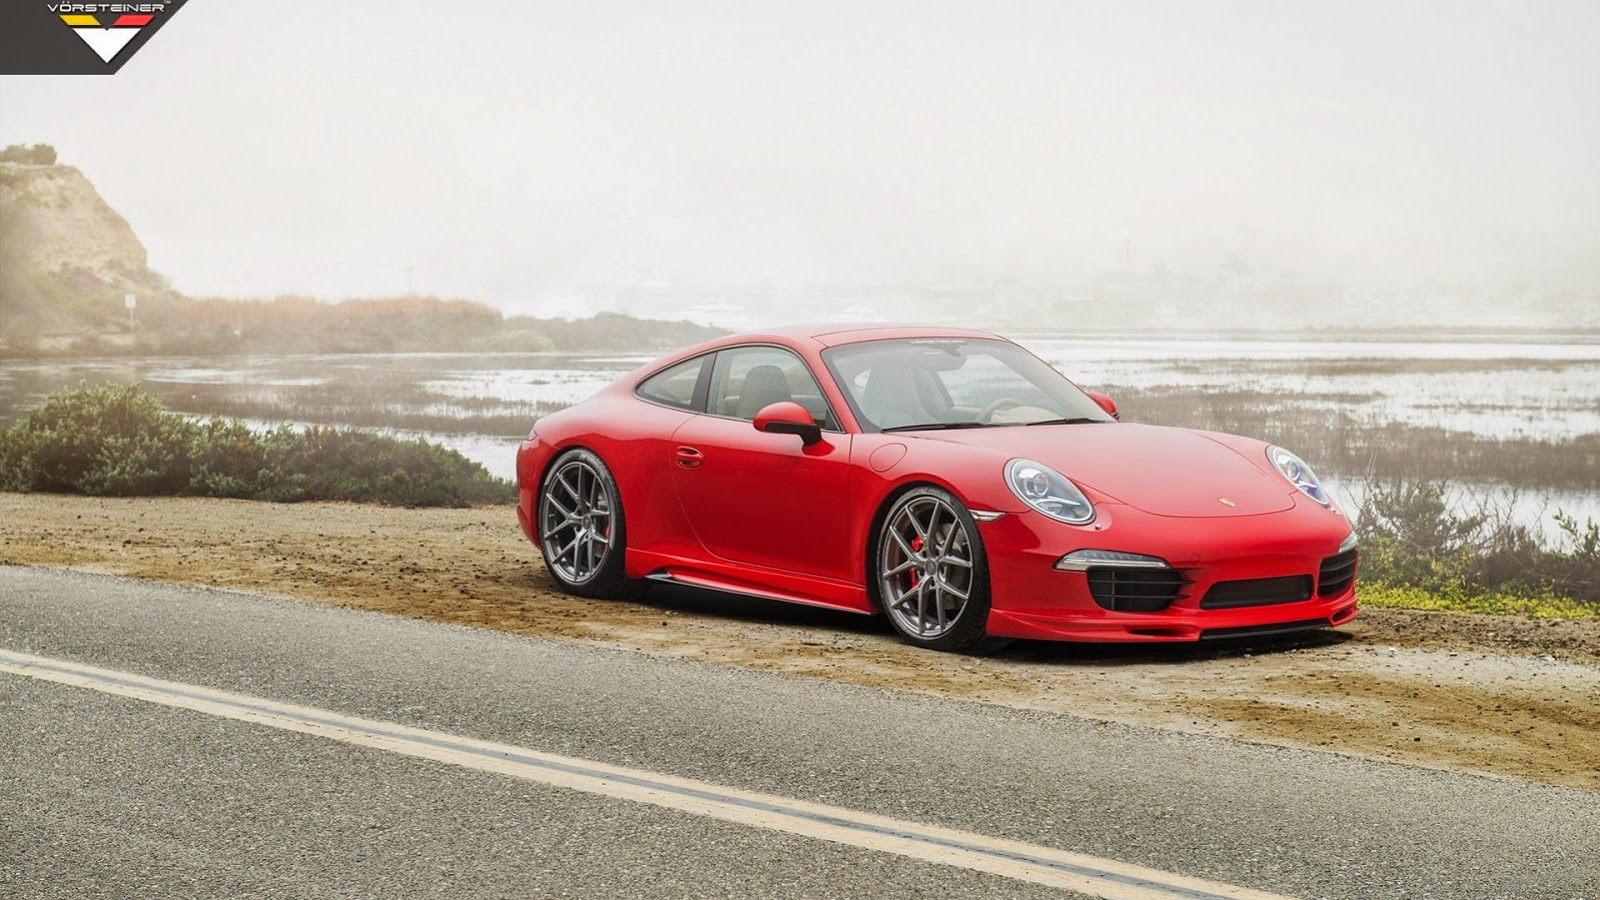 Red Porsche on Road Car Wallpaper Photo